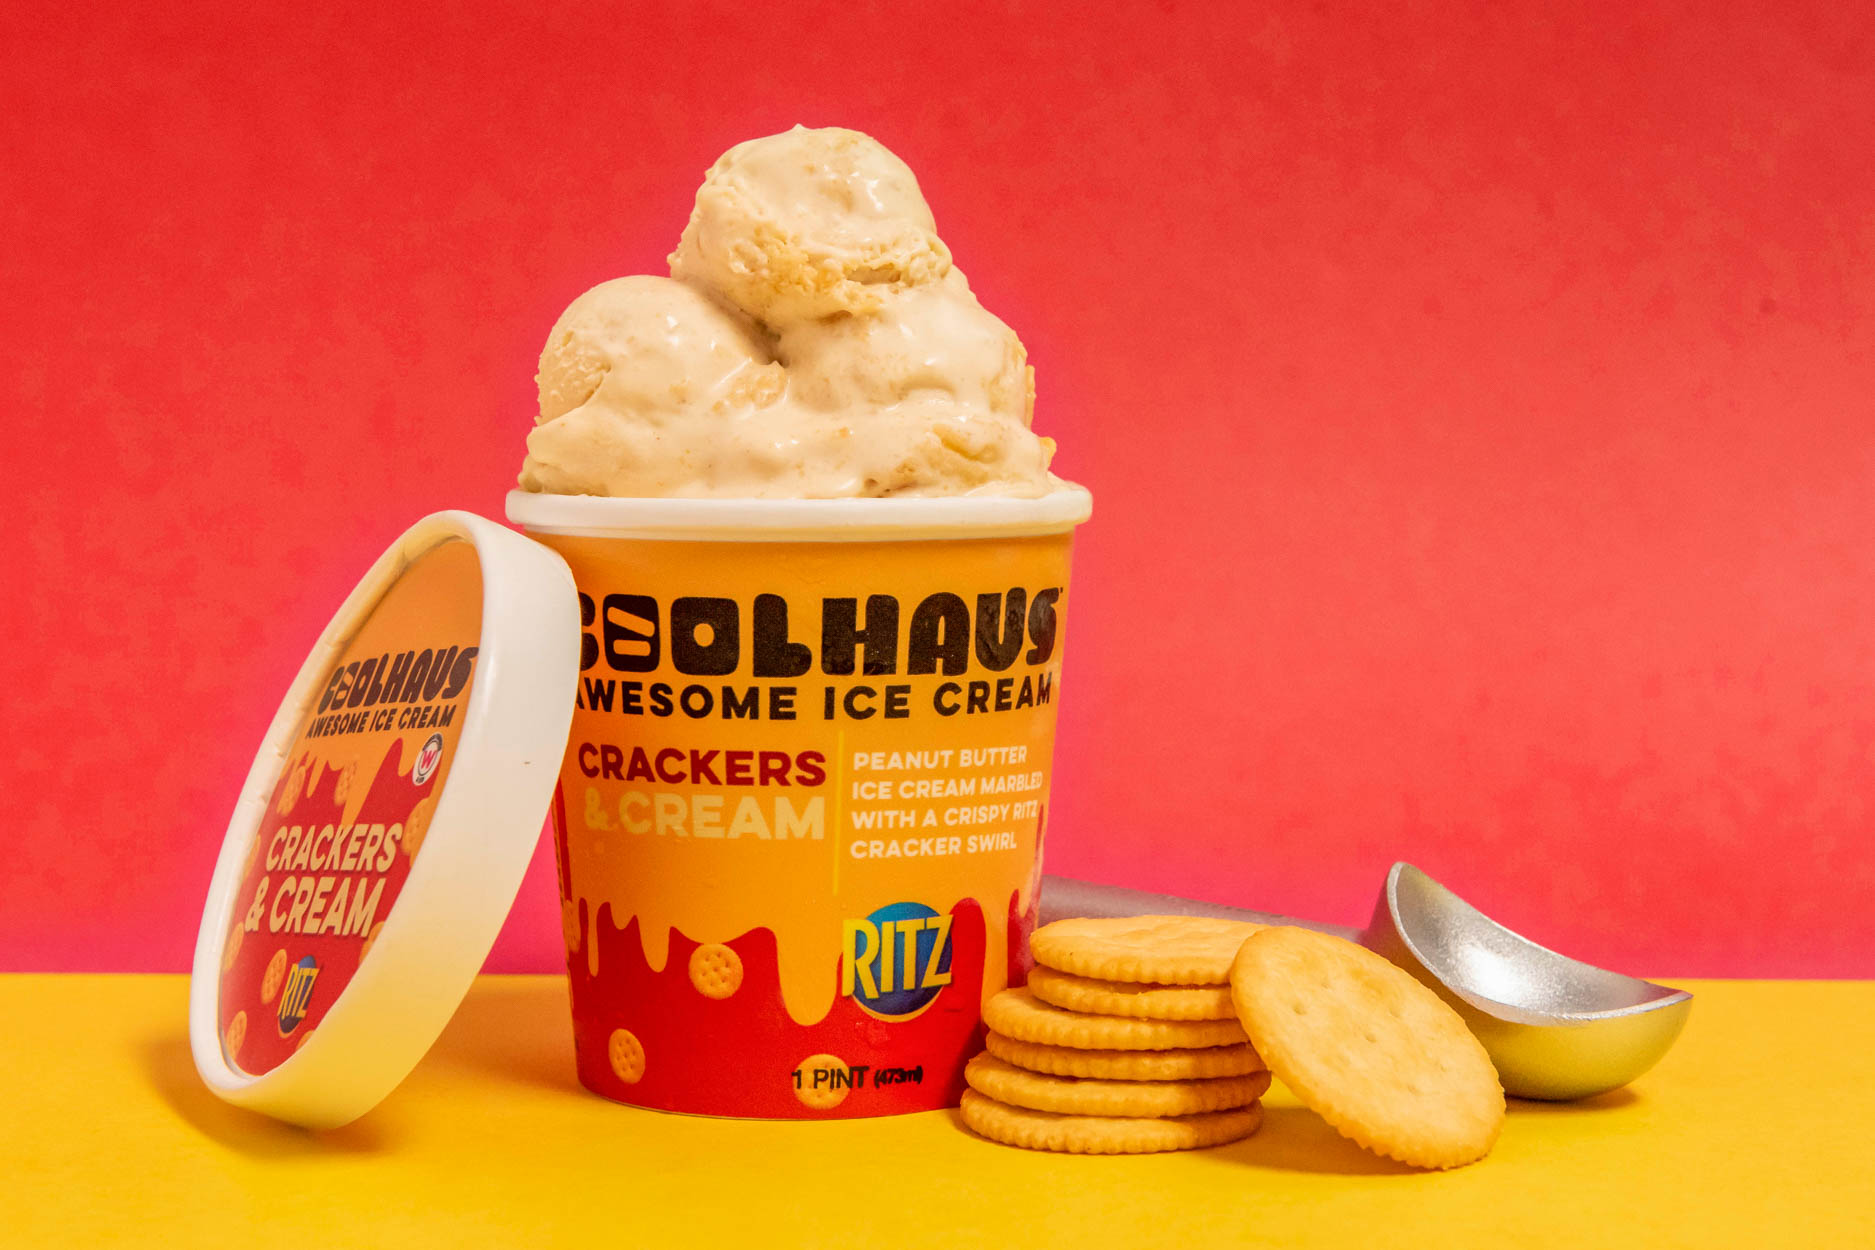 Crackers & Cream Flavored Coolhaus Ice Cream with Ritz Crackers